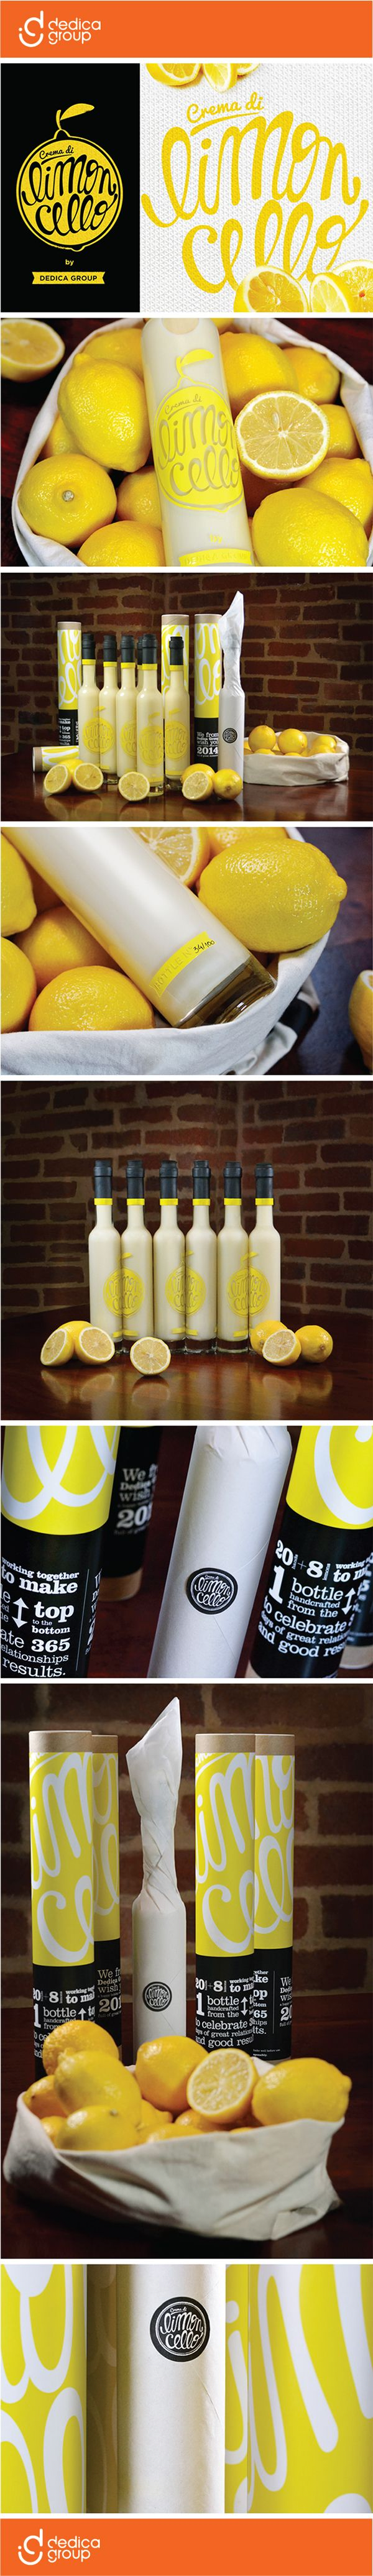 Crema di Limoncello Packaging on Behance